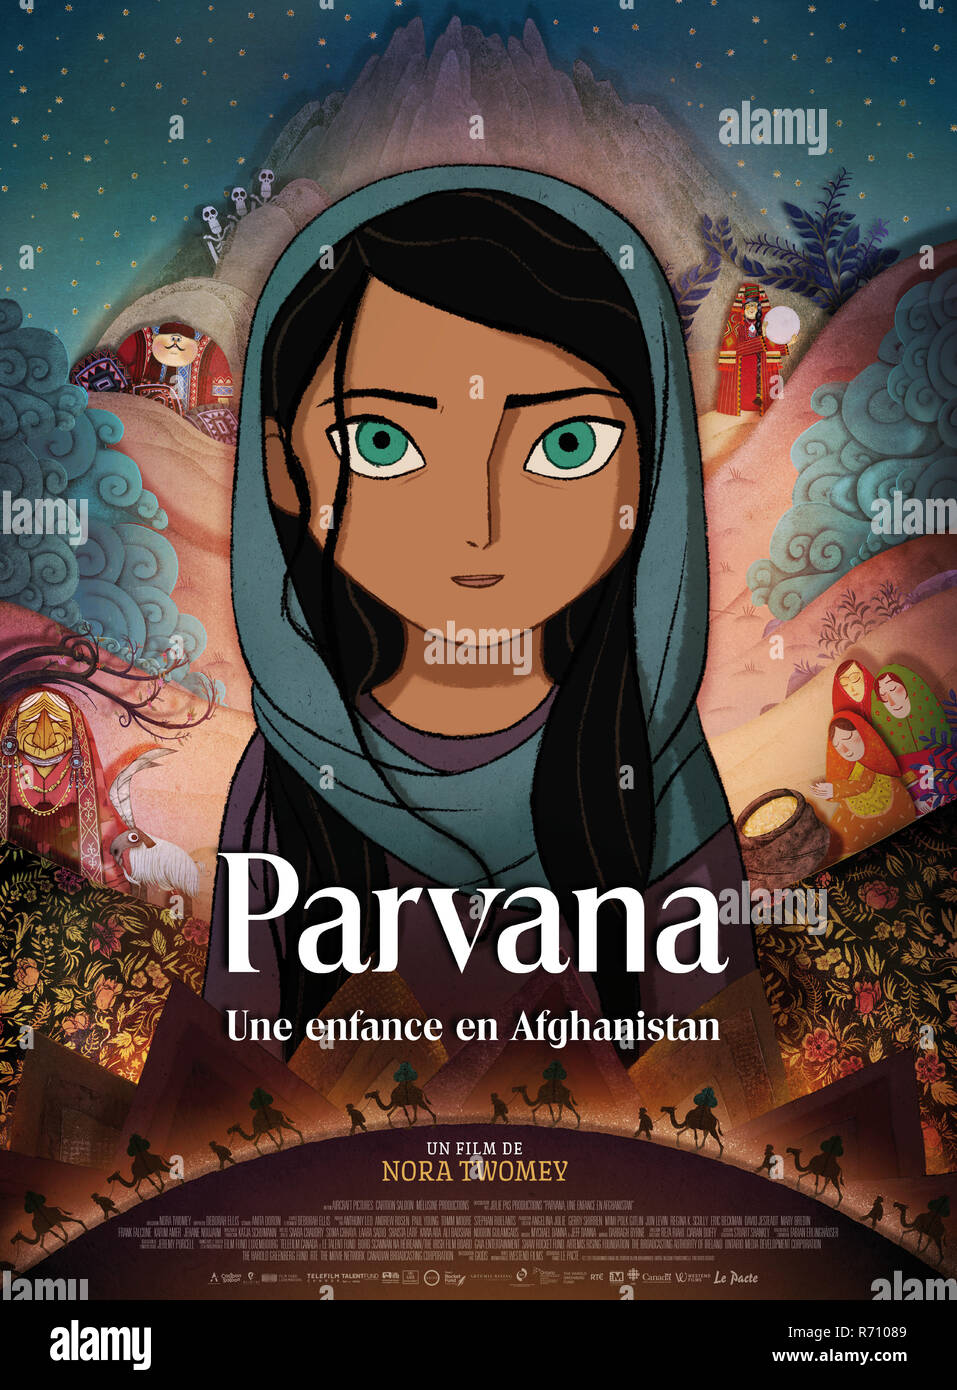 RELEASE DATE: November 17, 2017 TITLE: The Breadwinner STUDIO: DIRECTOR: Nora Twomey PLOT: In 2001, Afghanistan is under the control of the Taliban. When her father is captured, a determined young girl disguises herself as a boy in order to provide for her family. STARRING: Saara Chaudry, Soma Chhaya, Noorin Gulamgaus. (Credit Image: © Aircraft Pictures/Entertainment Pictures) - Stock Image